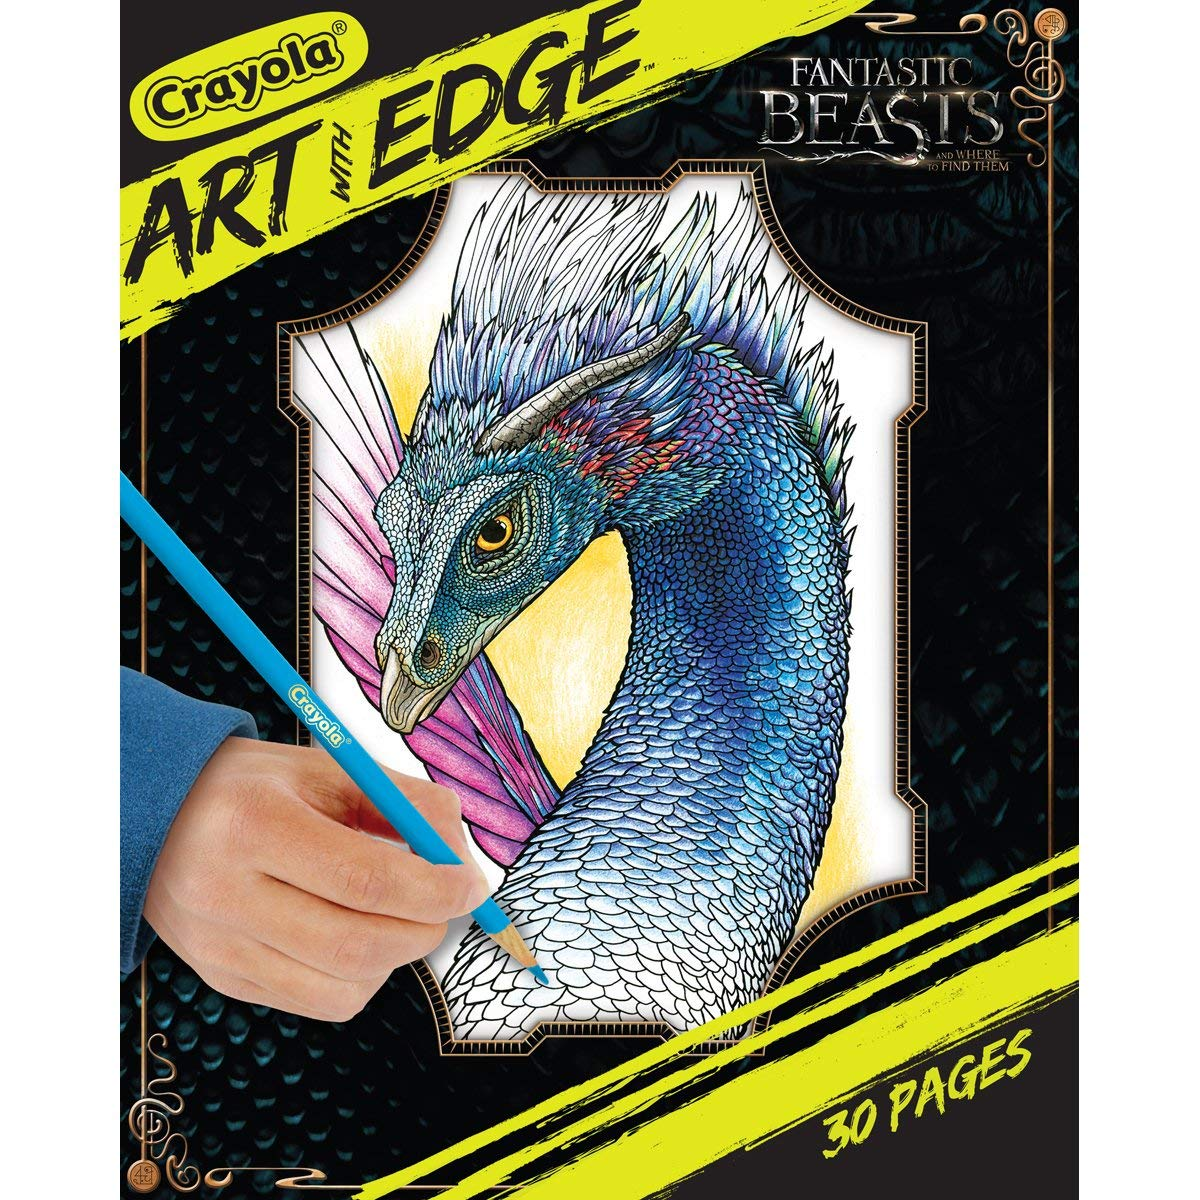 30 Pages 04-0117 Crayola Art With Edge Gift Fantastic Beasts Coloring Book